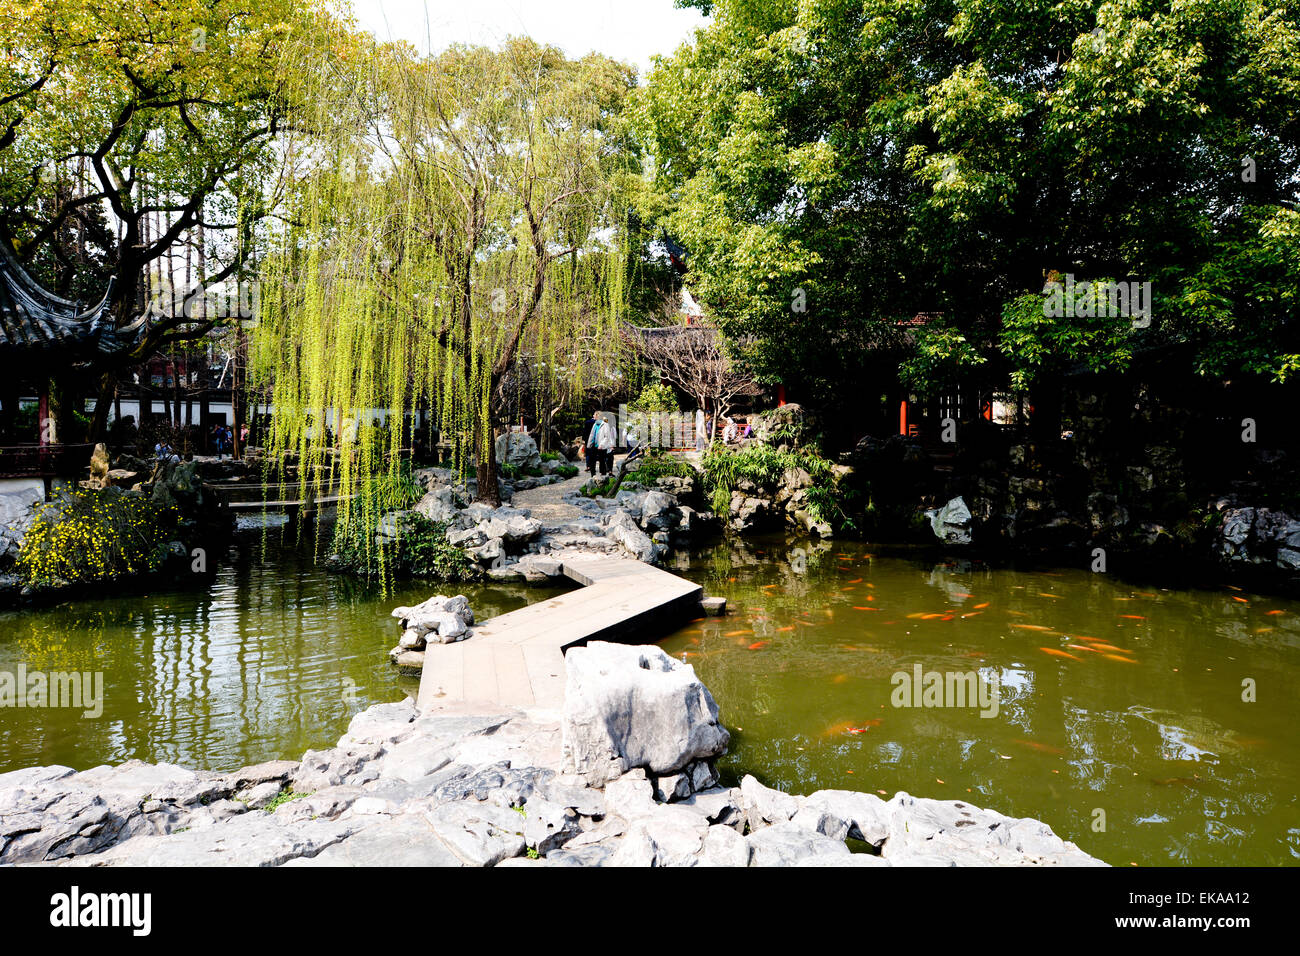 Yu Garden Occupies An Area Of 2 Hectares 5 Acres And Is Divided Into Six General Areas Laid Out In The Suzhou Style